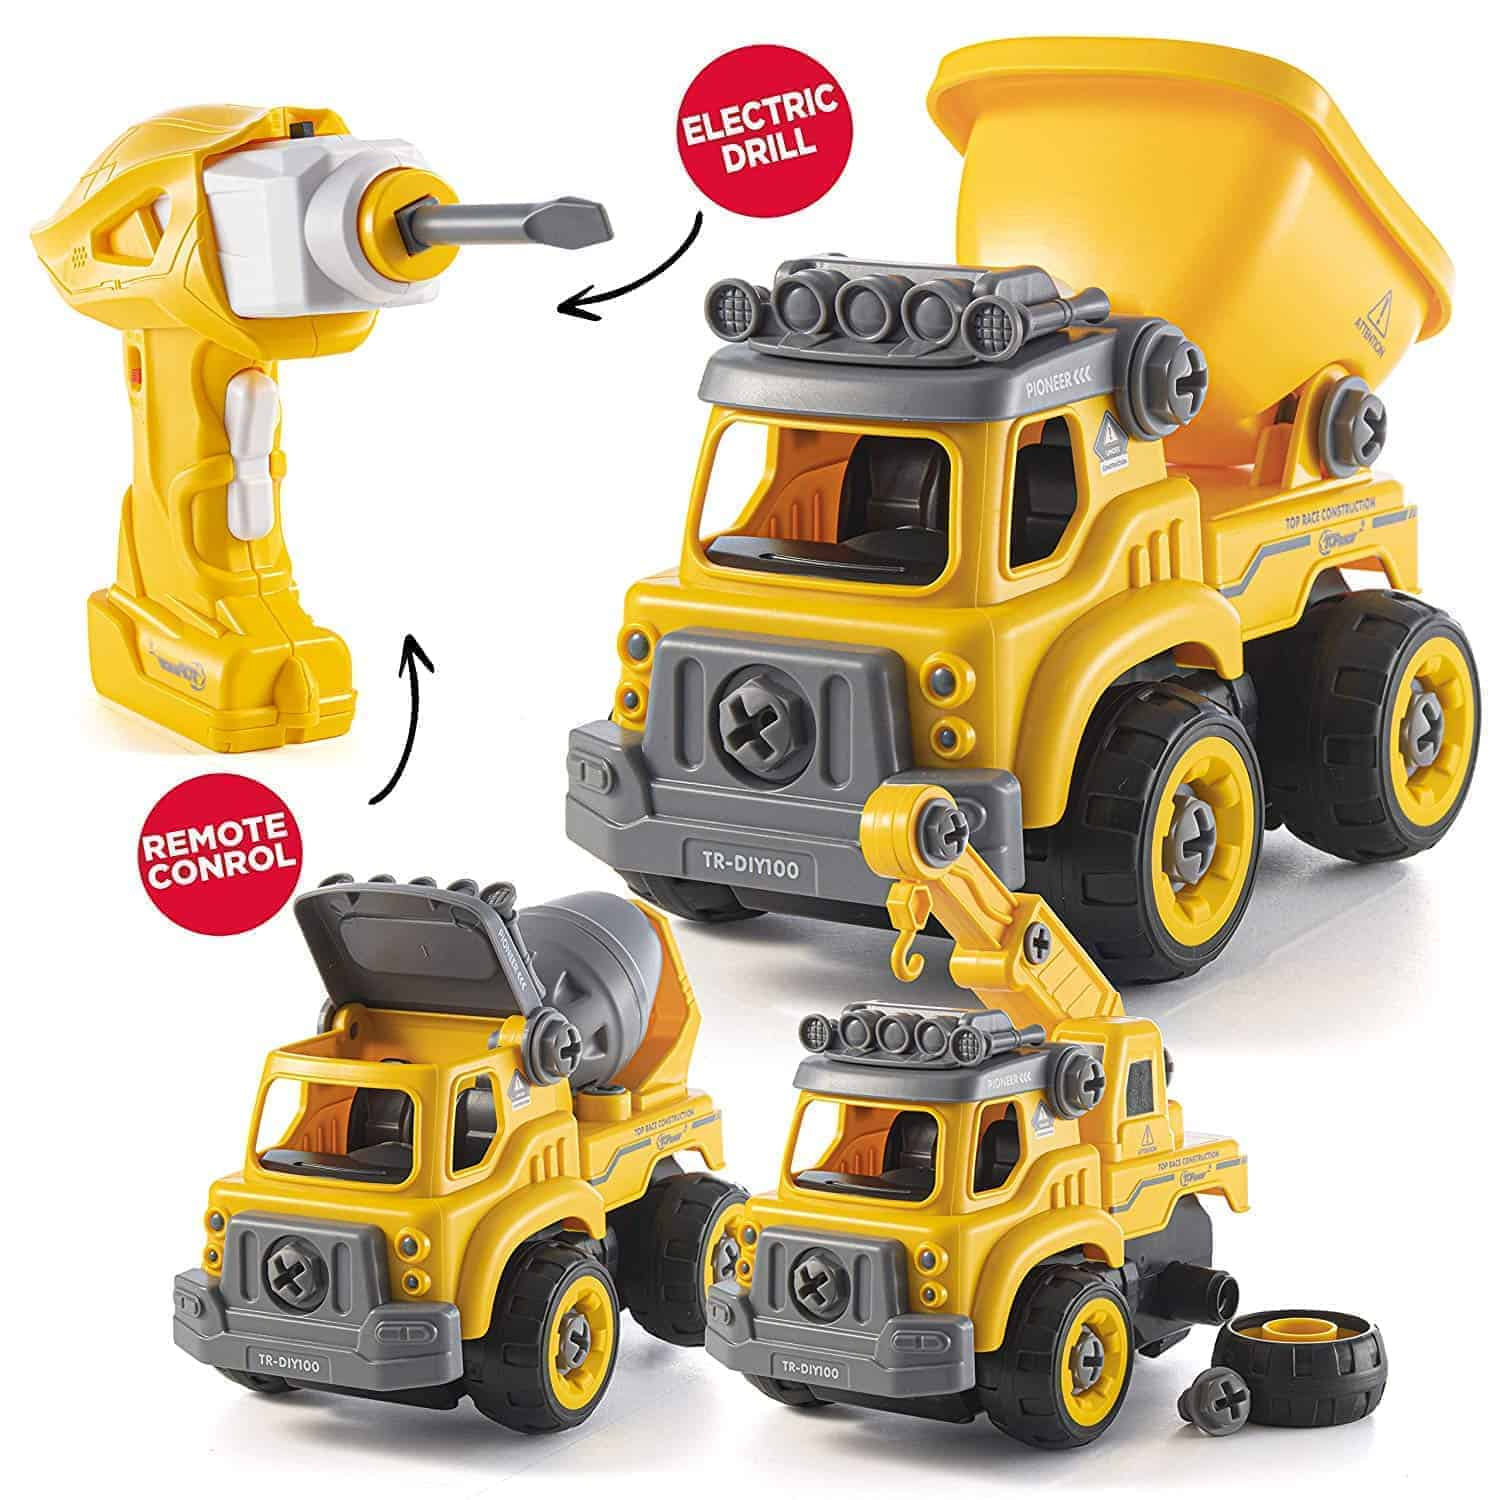 take apart toys working toy drill | kimschob.com